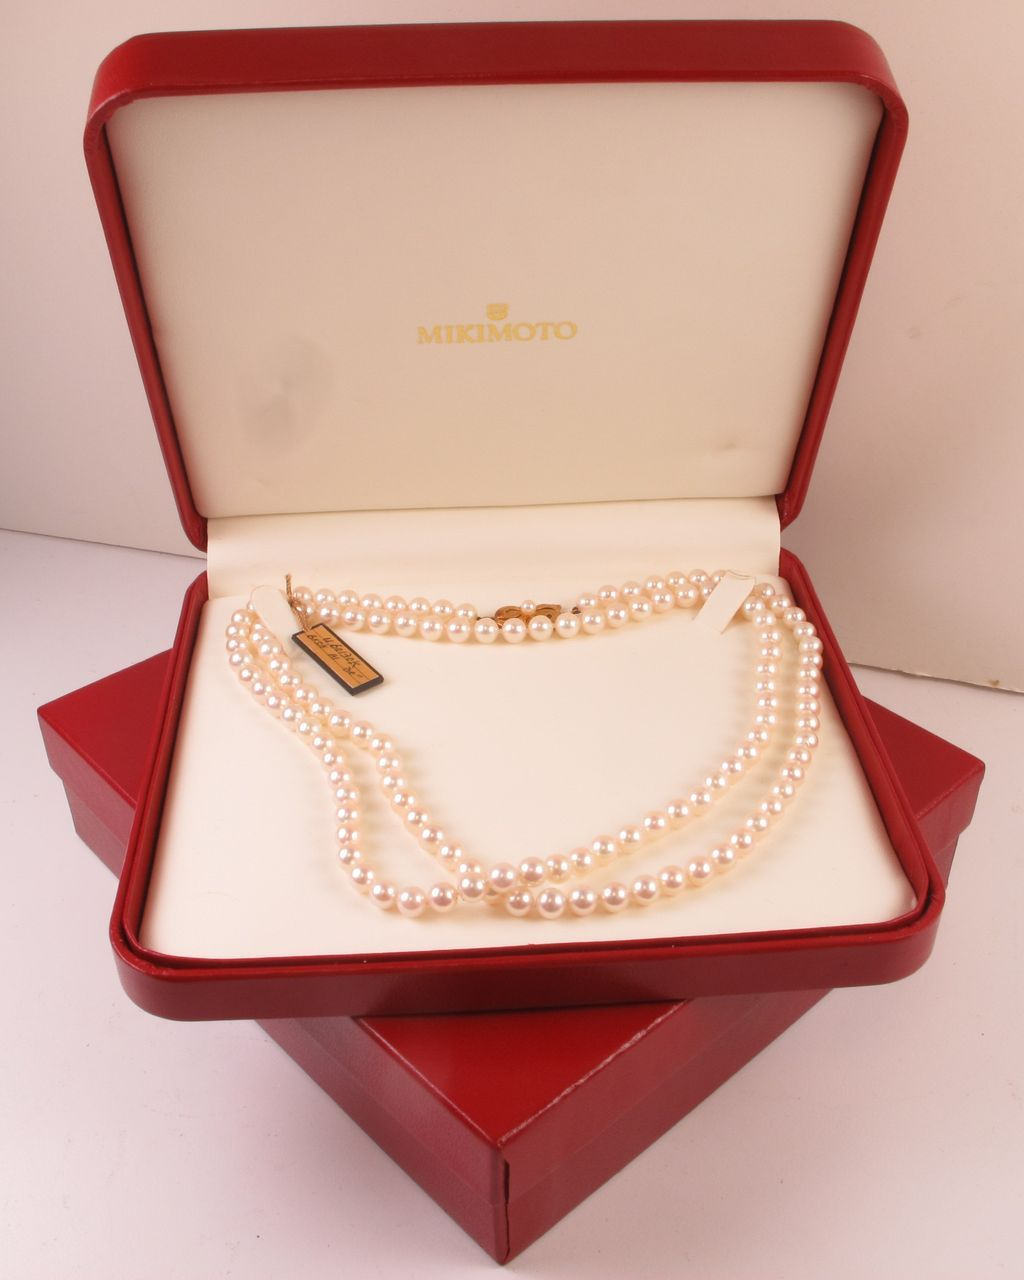 Vintage Mikimoto Cultured Pearl Strand OPERA Length, 6 mm